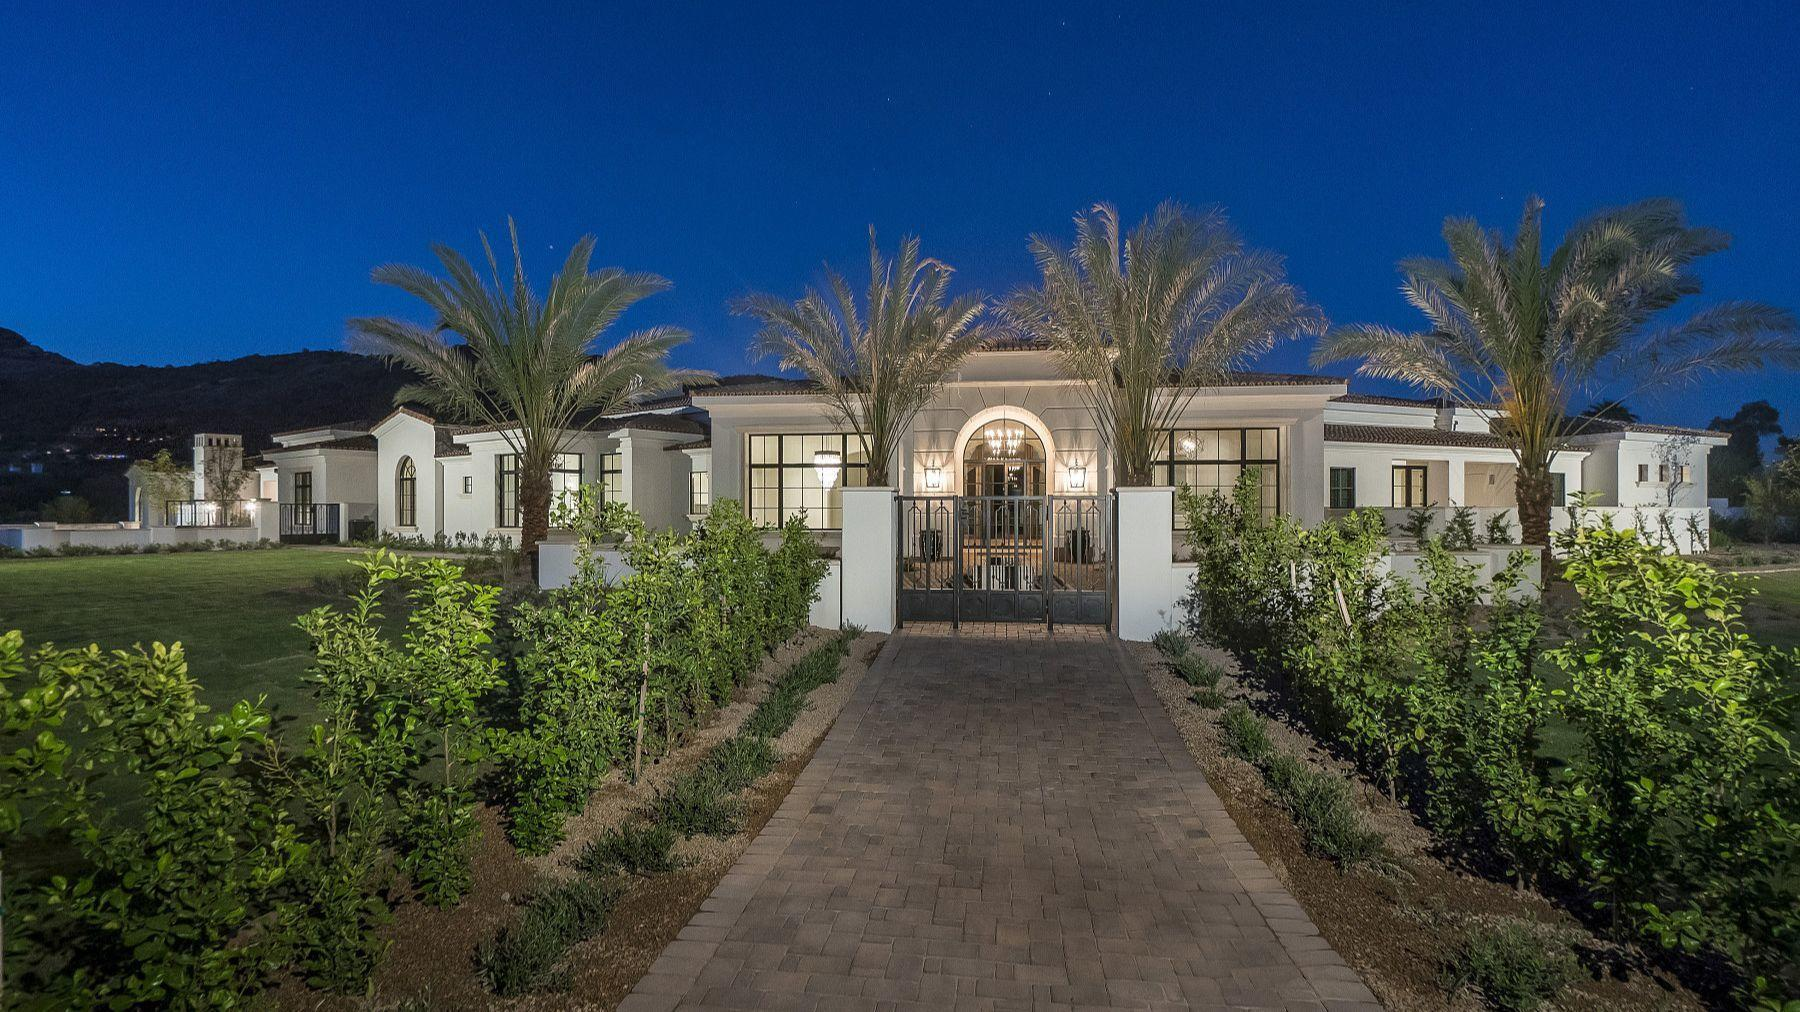 new arizona mansion linked to michael phelps baltimore sun. Black Bedroom Furniture Sets. Home Design Ideas